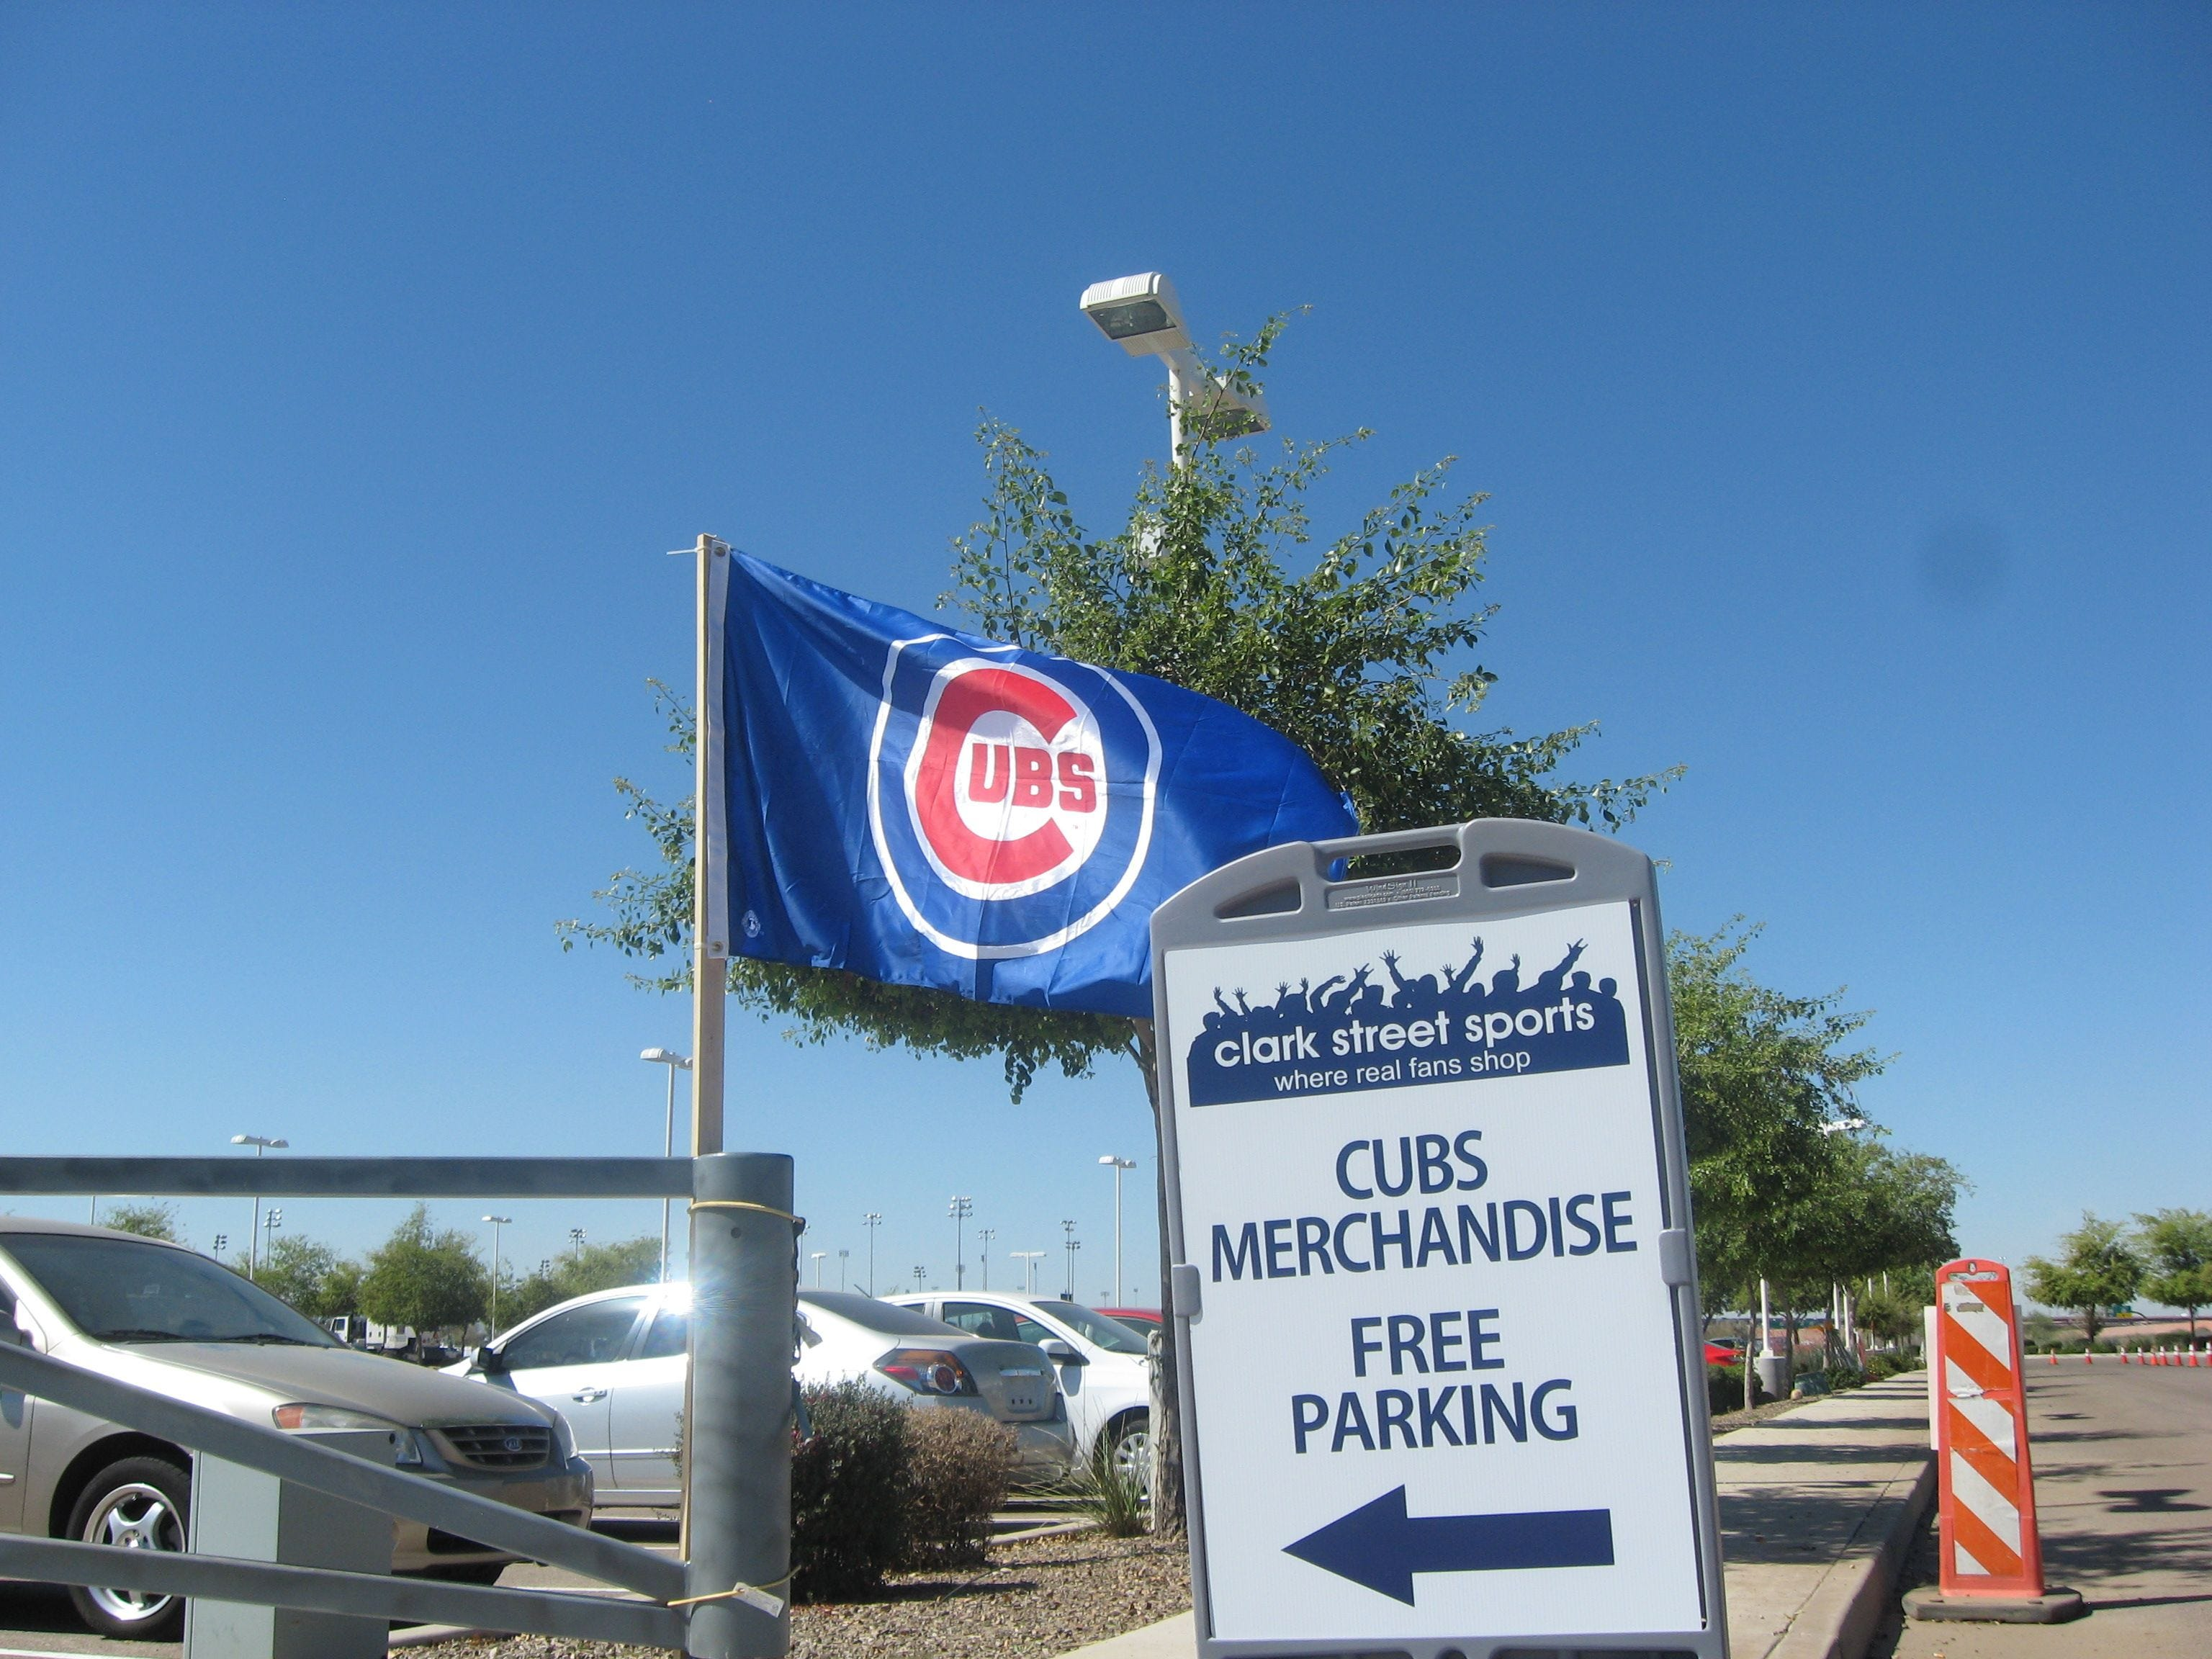 Kimco Realty, Owner Of Riverview Shopping Center In Mesa, Is Considering  How To Accommodate People Parking For Games At The New Chicago Cubs Stadium  And ...